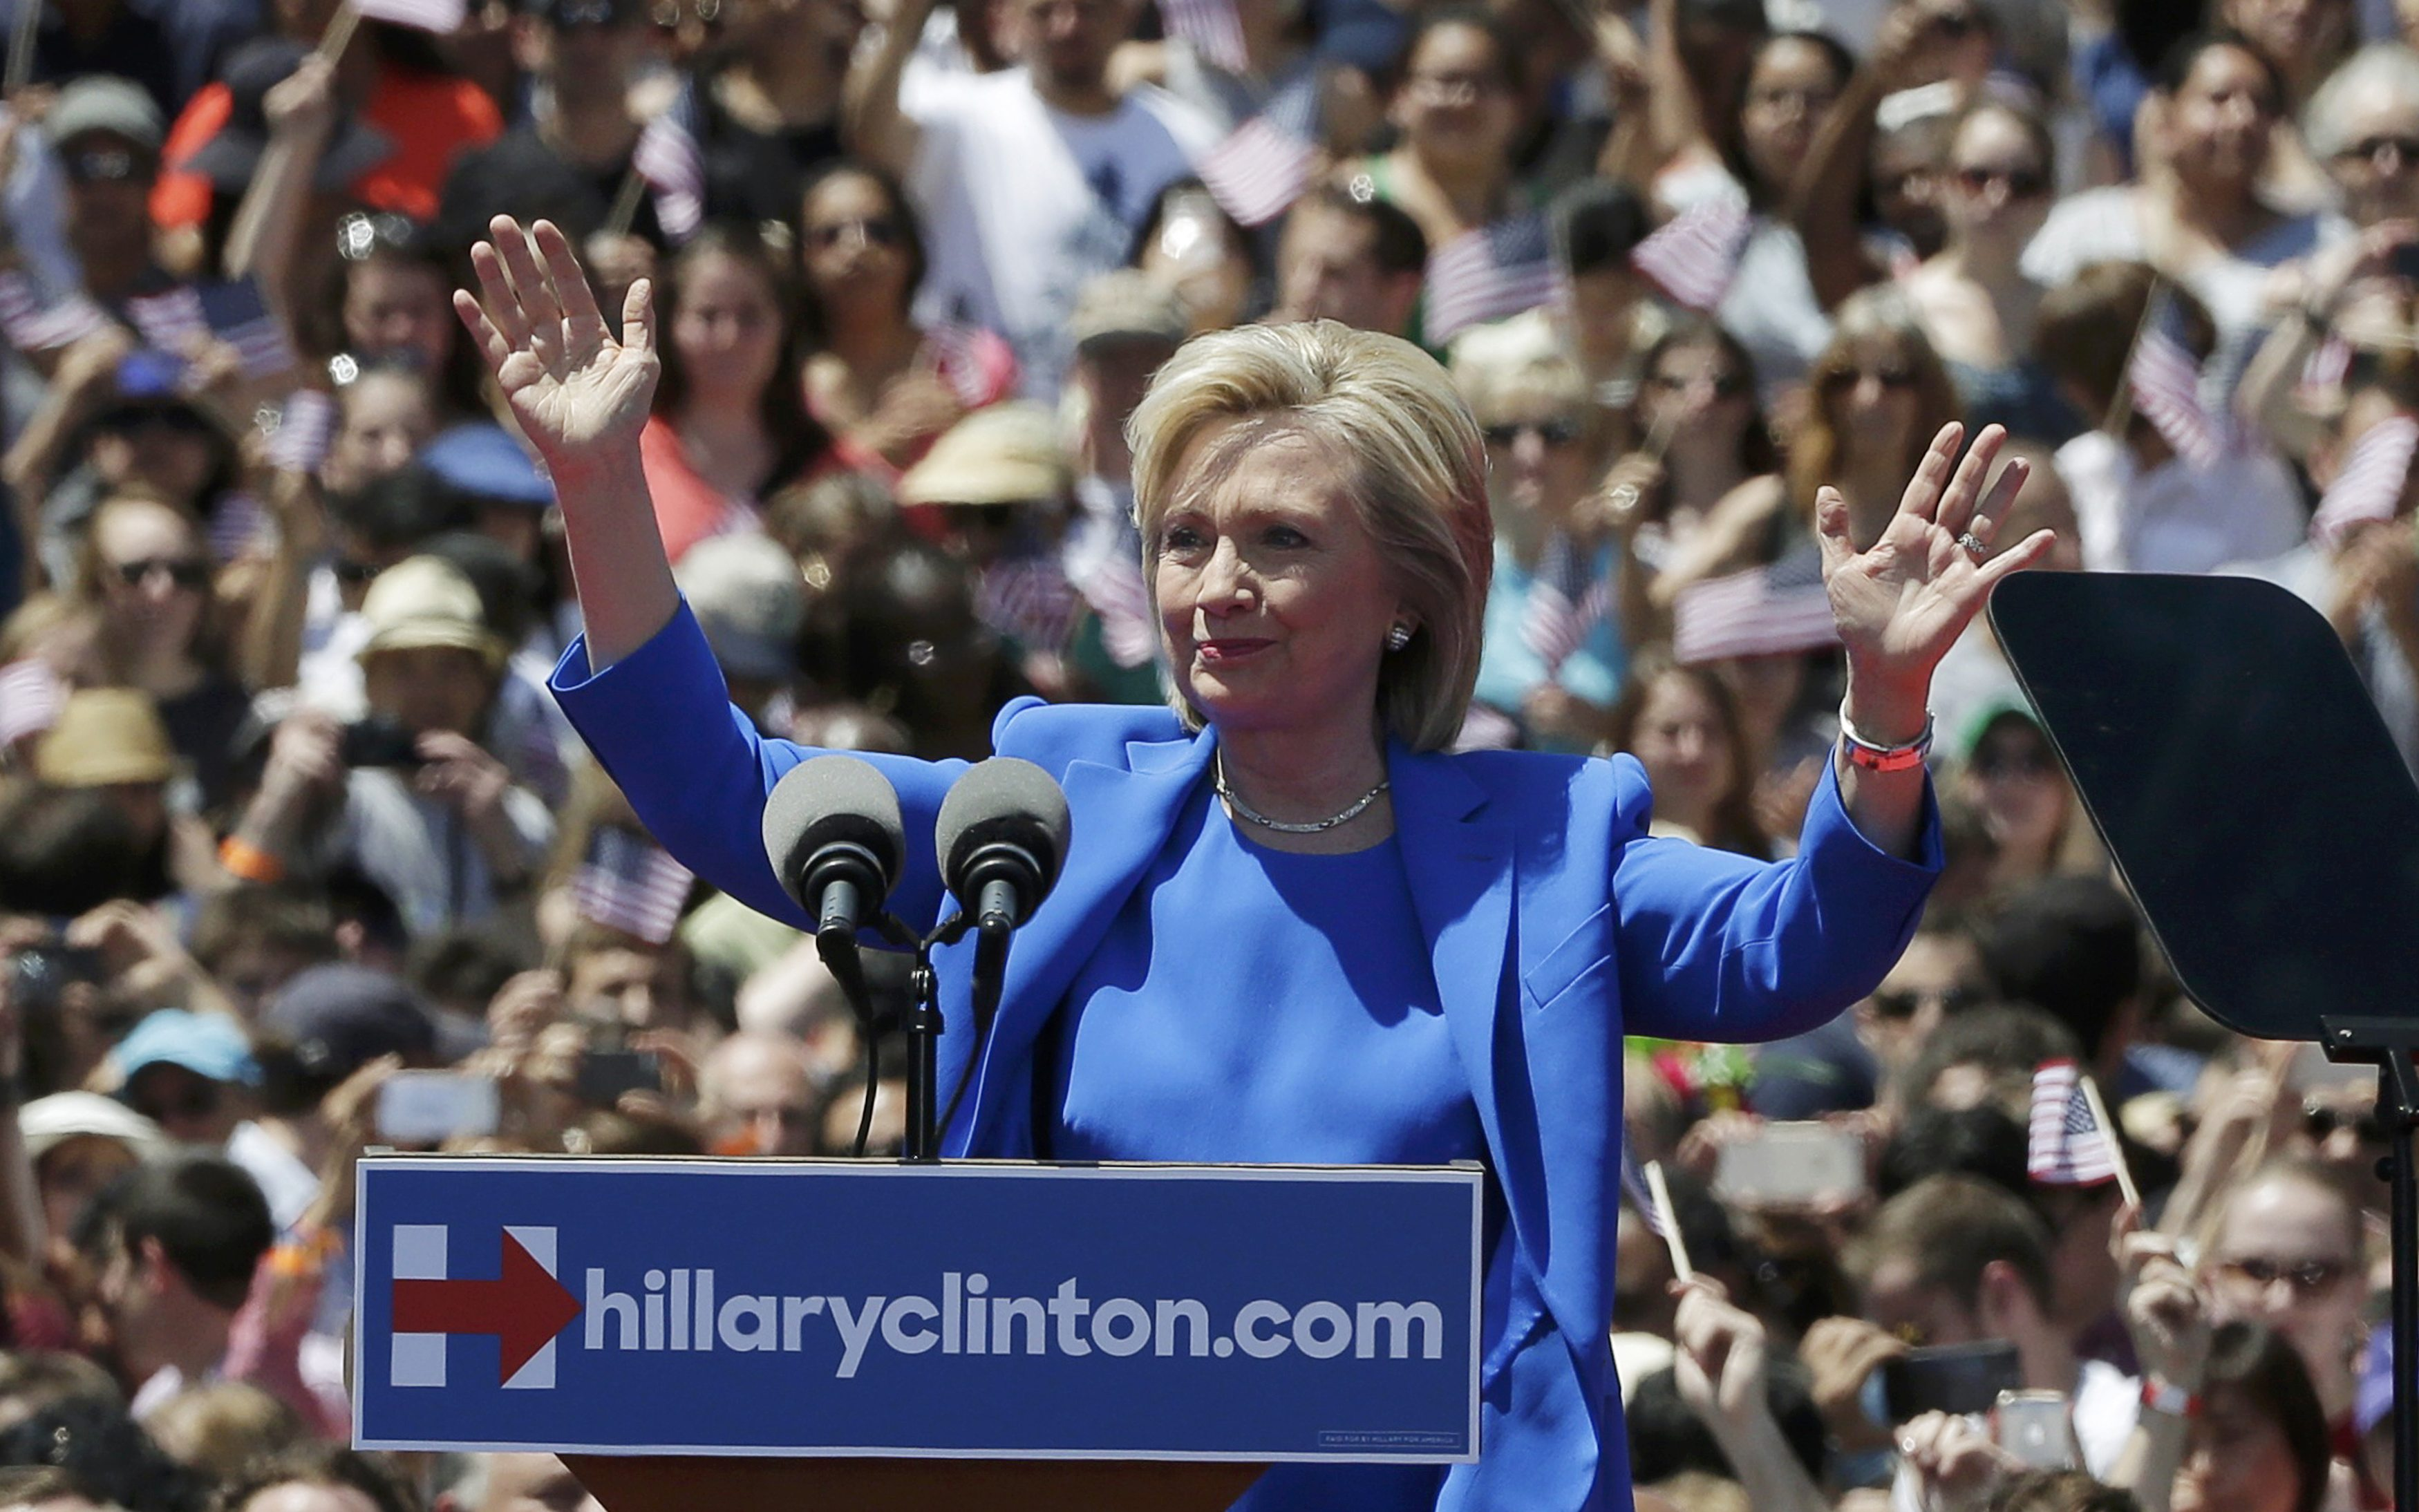 Clinton distances herself from Obama's style, if not his substance